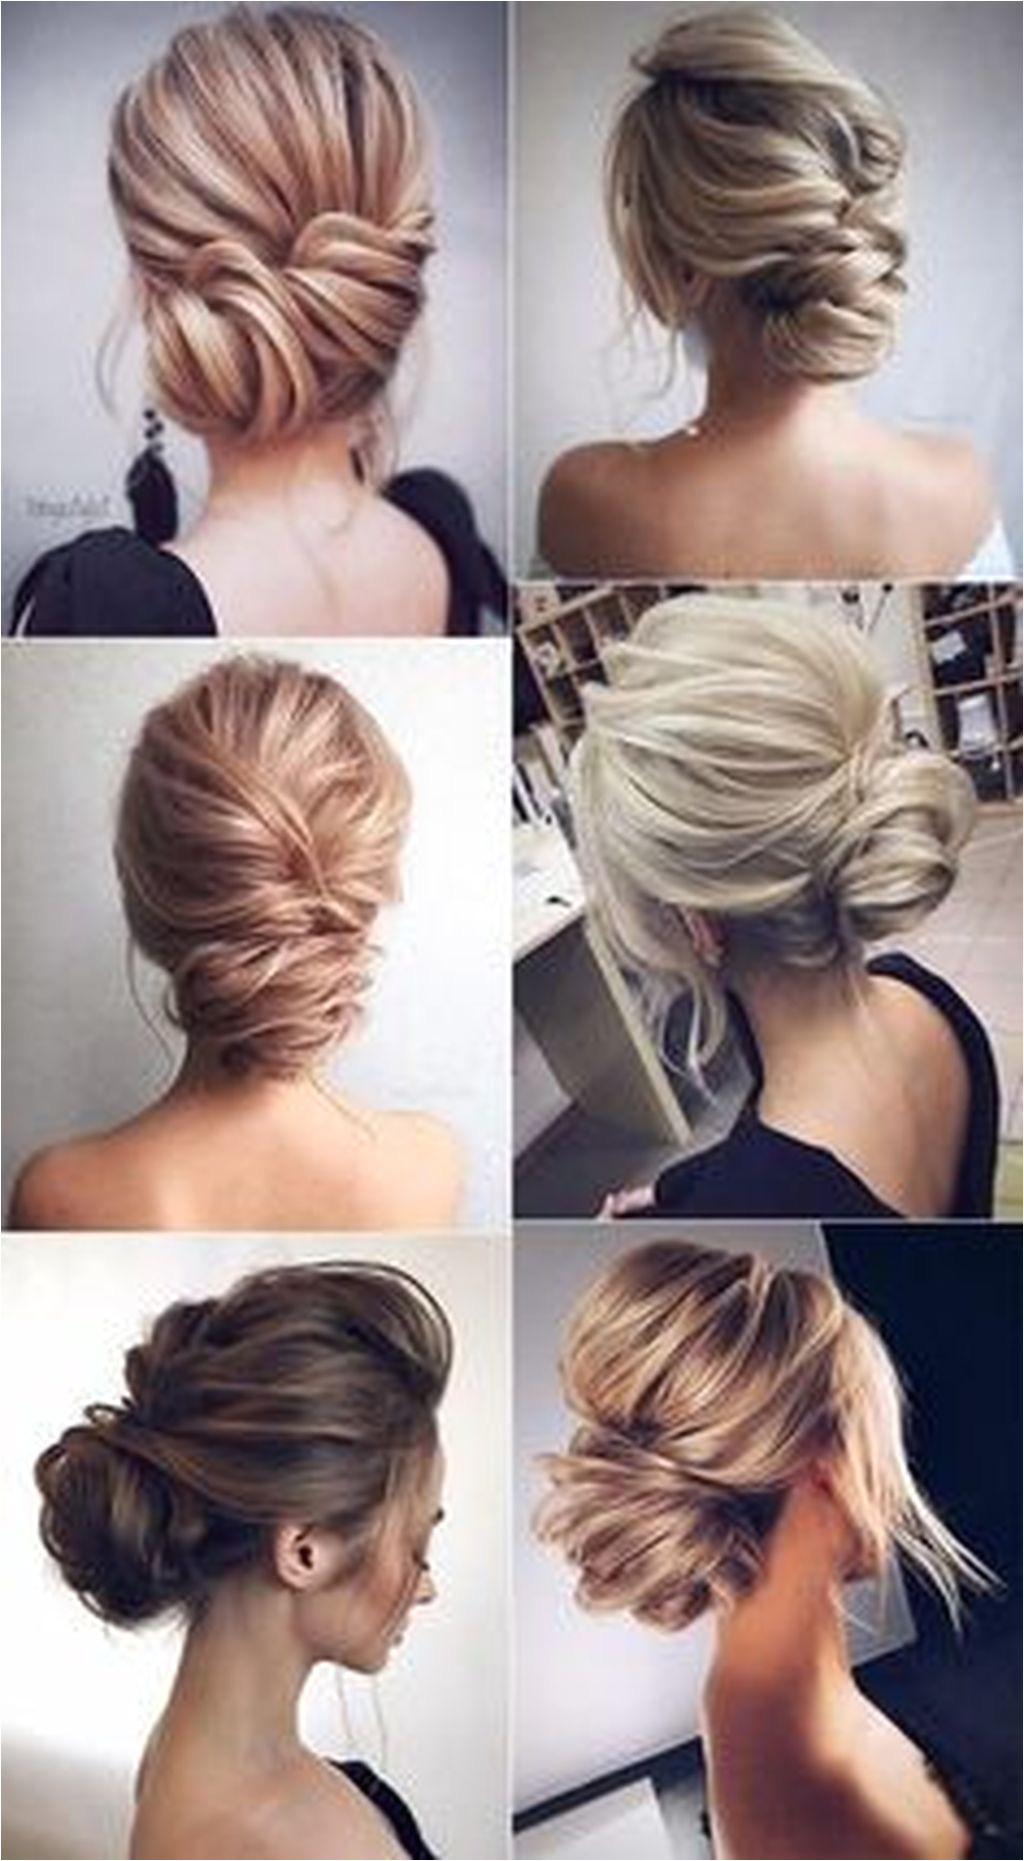 You can shine with half up easy hairstyles if you do it correctly no need to intricate half up half down hairstyles